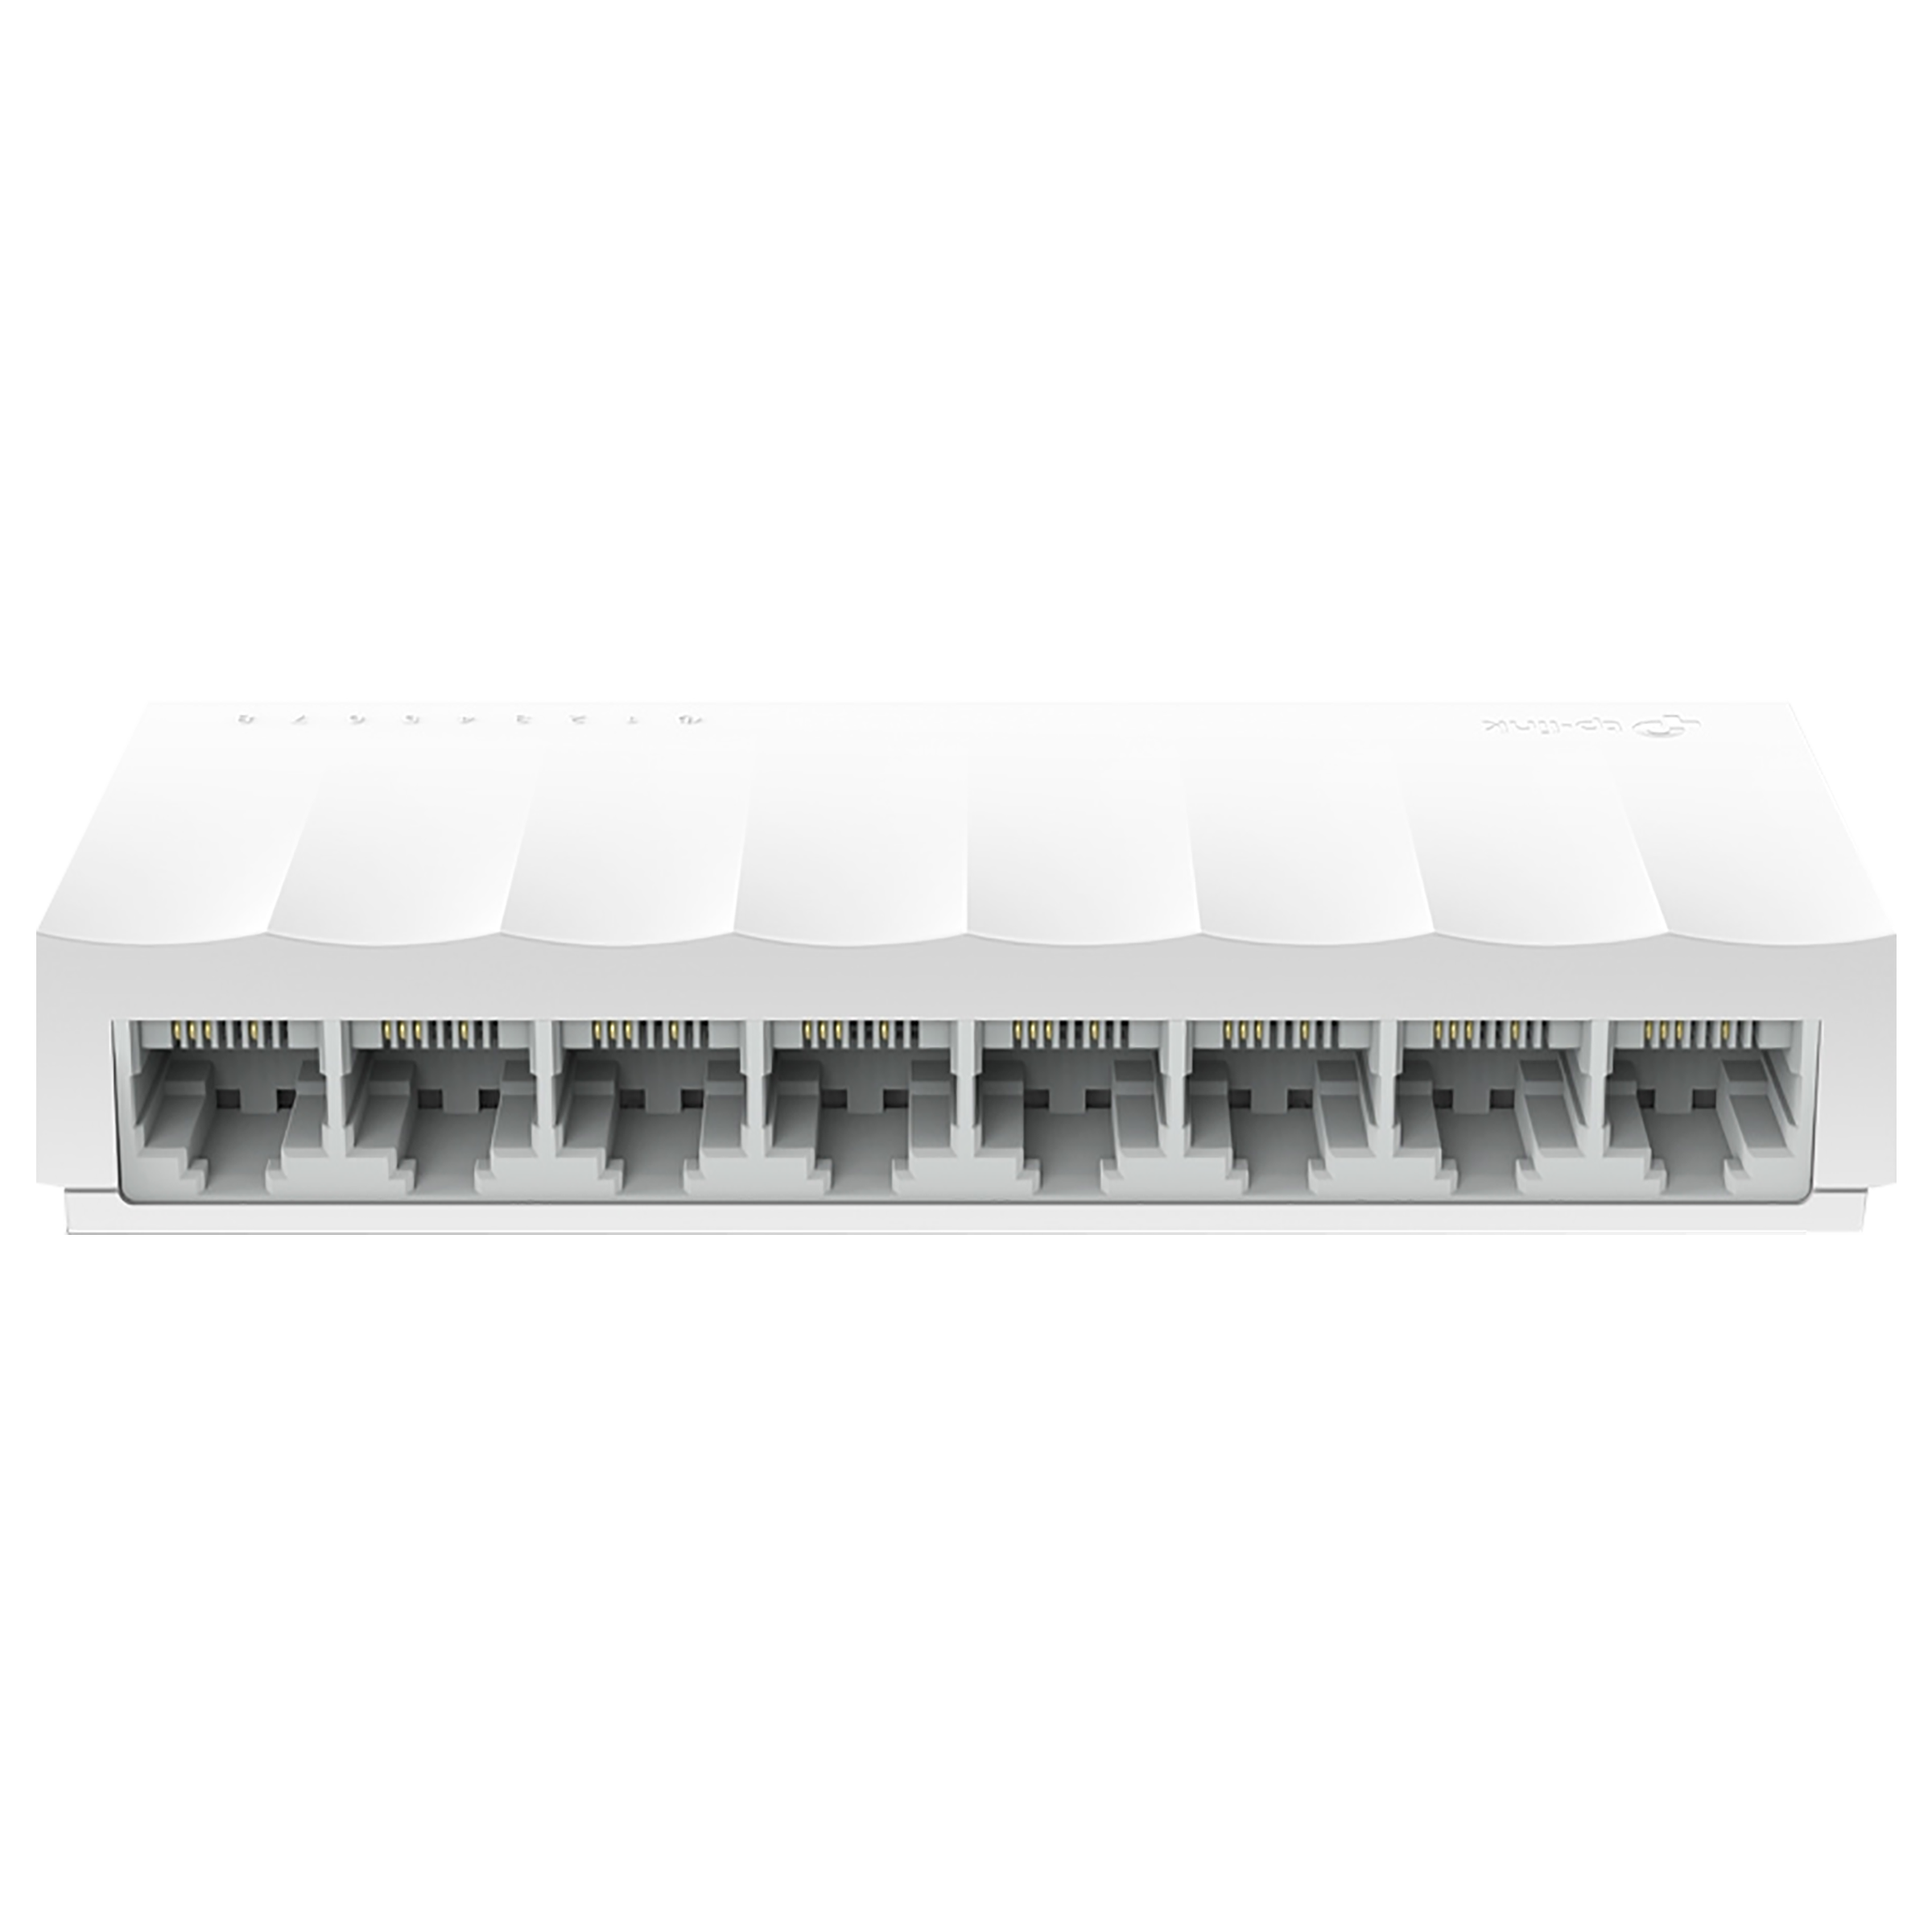 Tp-Link LS1008 Switch/Plug (Green Ethernet Technology, 1730502151, White)_1